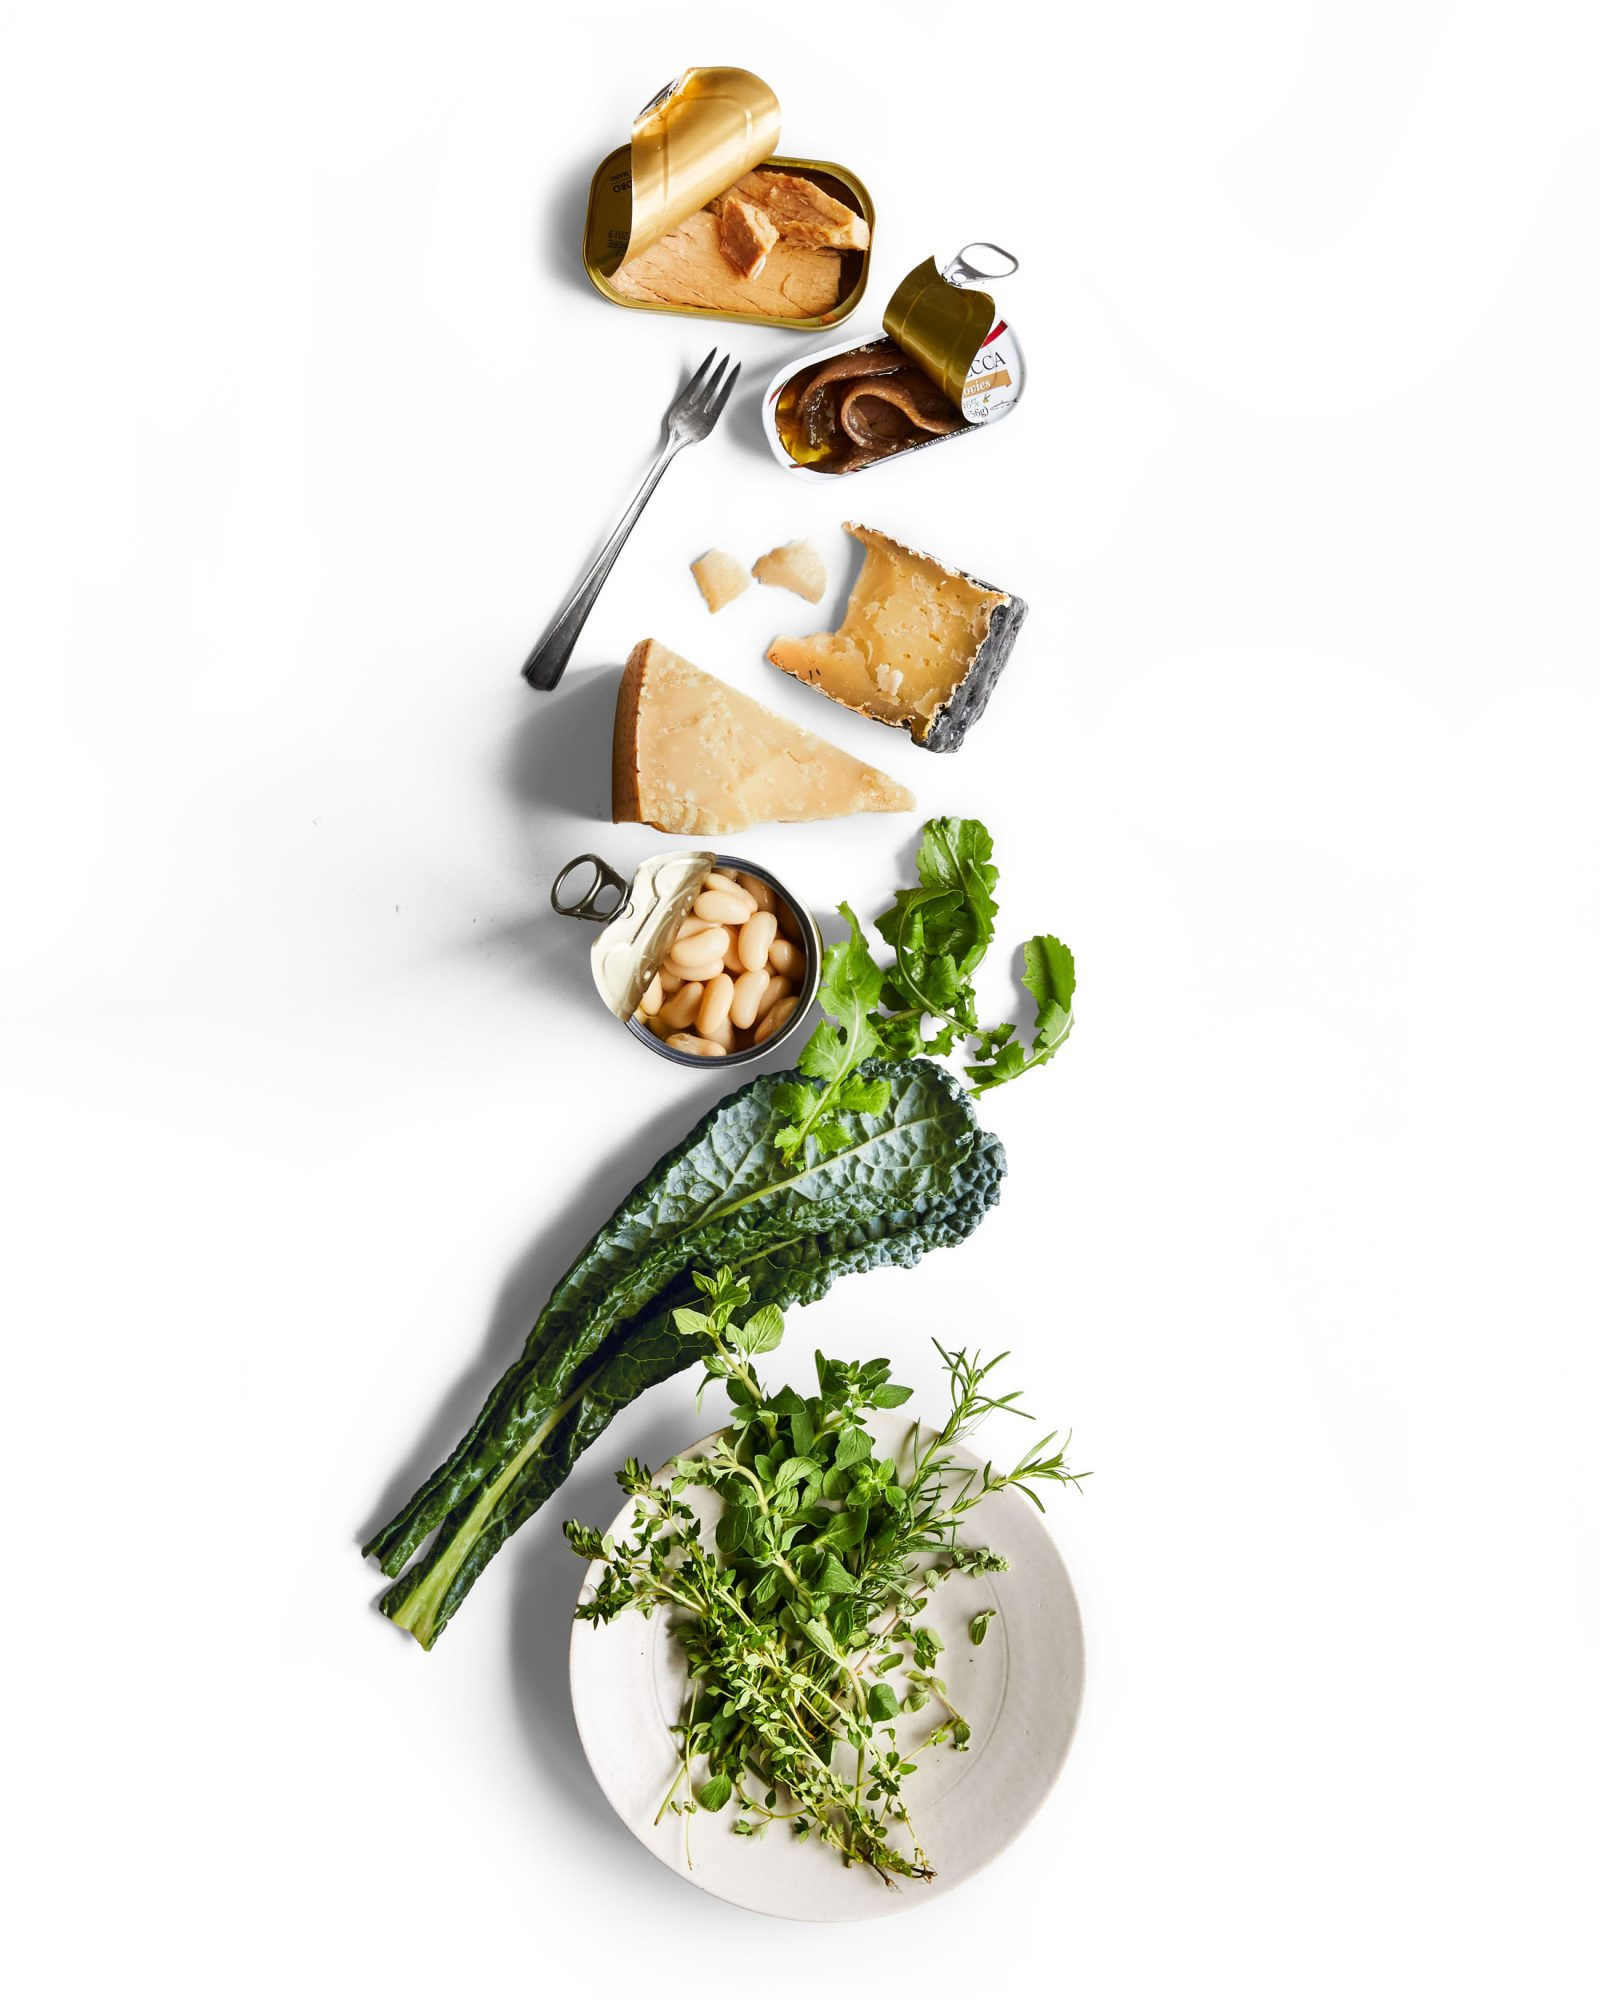 ingredients to add with pasta